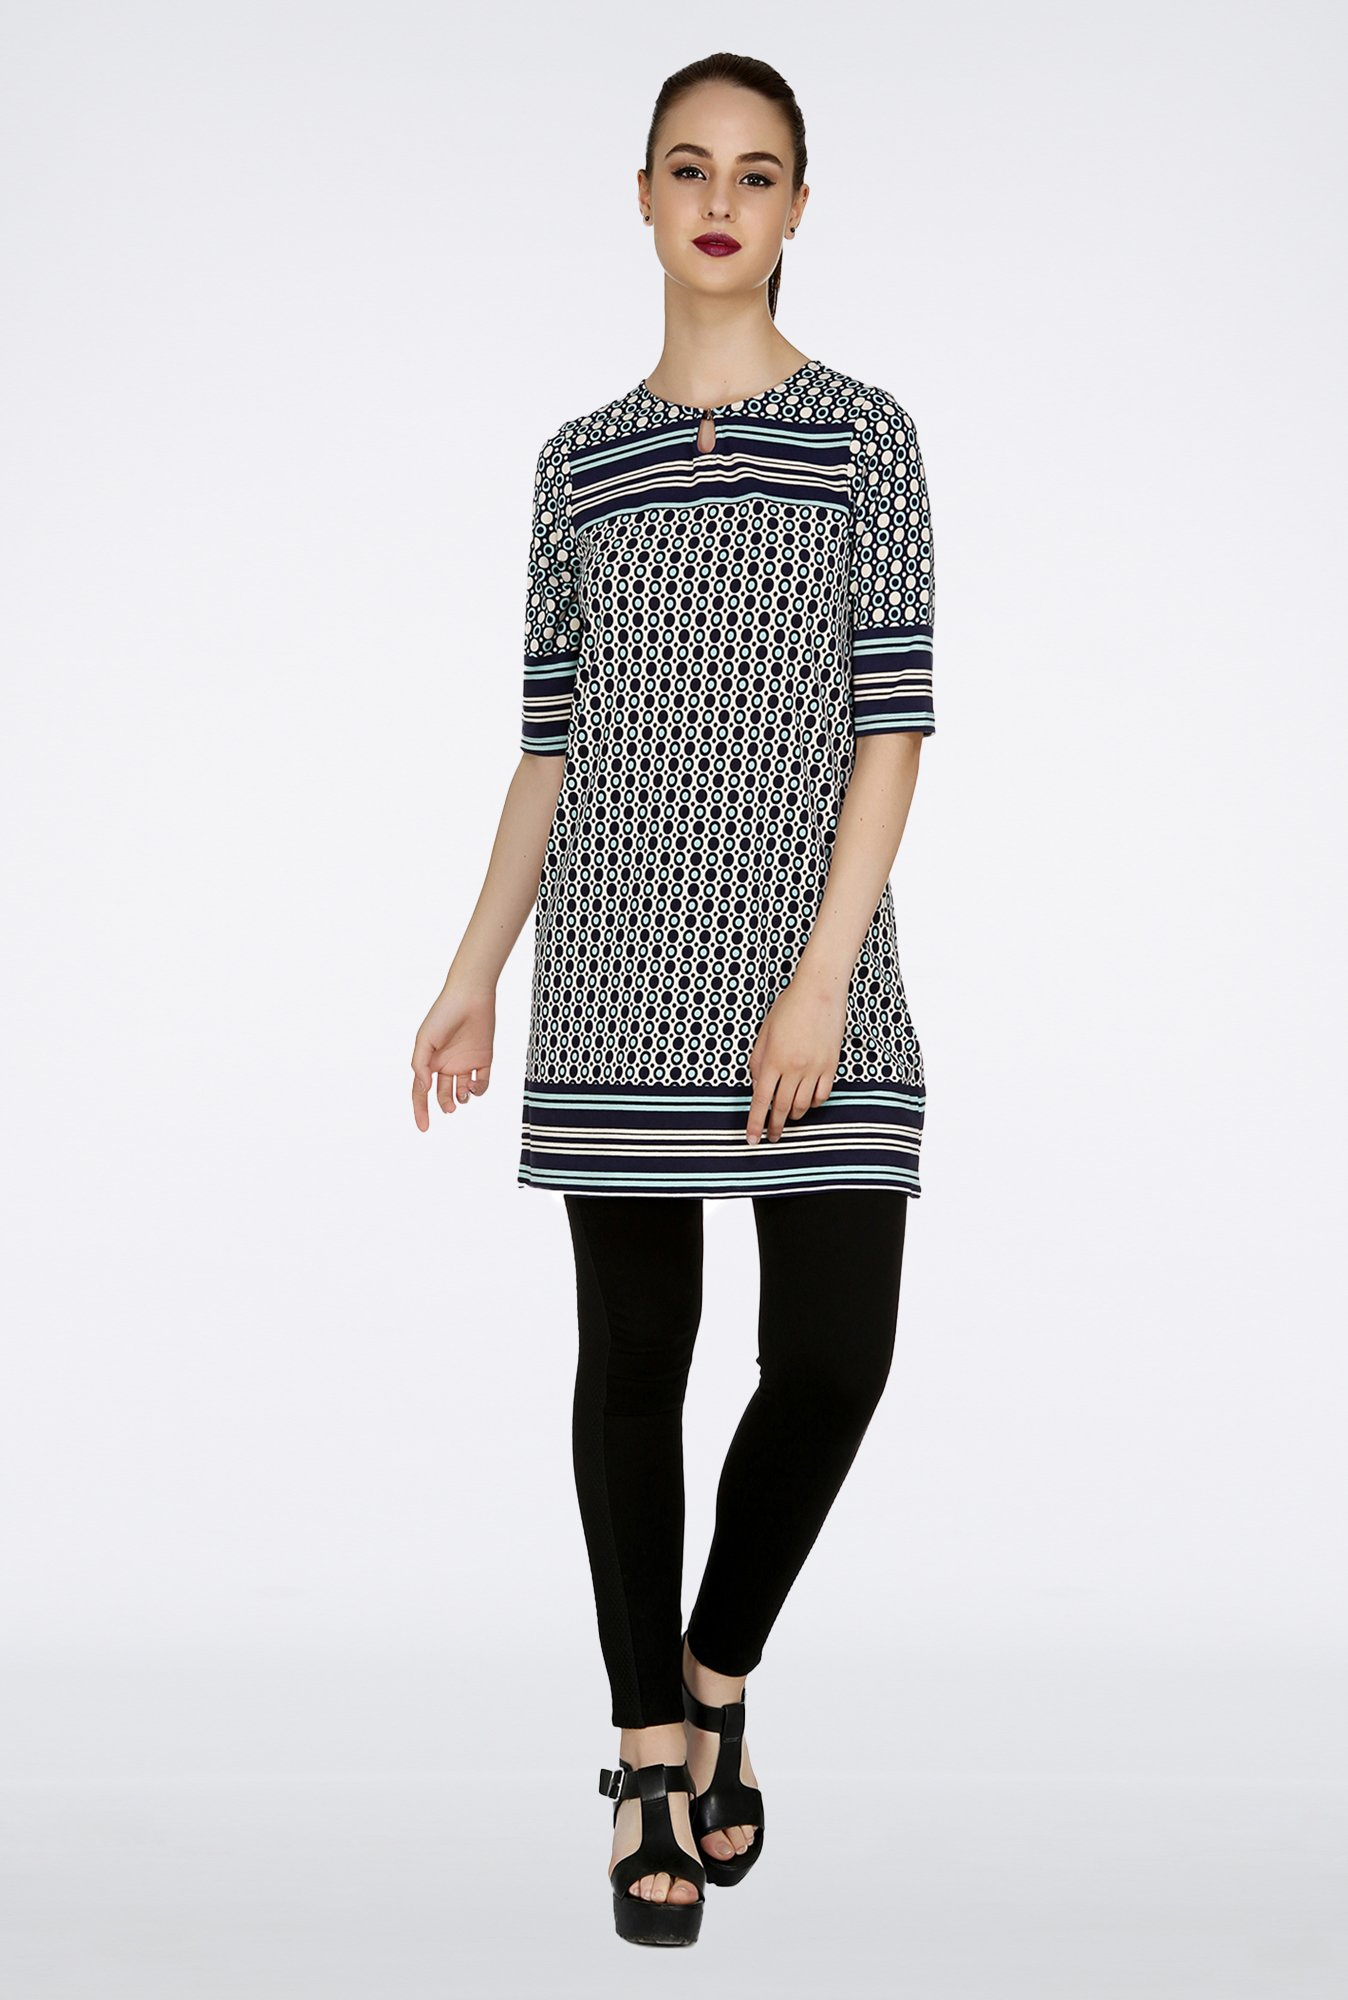 109 F Dark Blue Printed Tunic